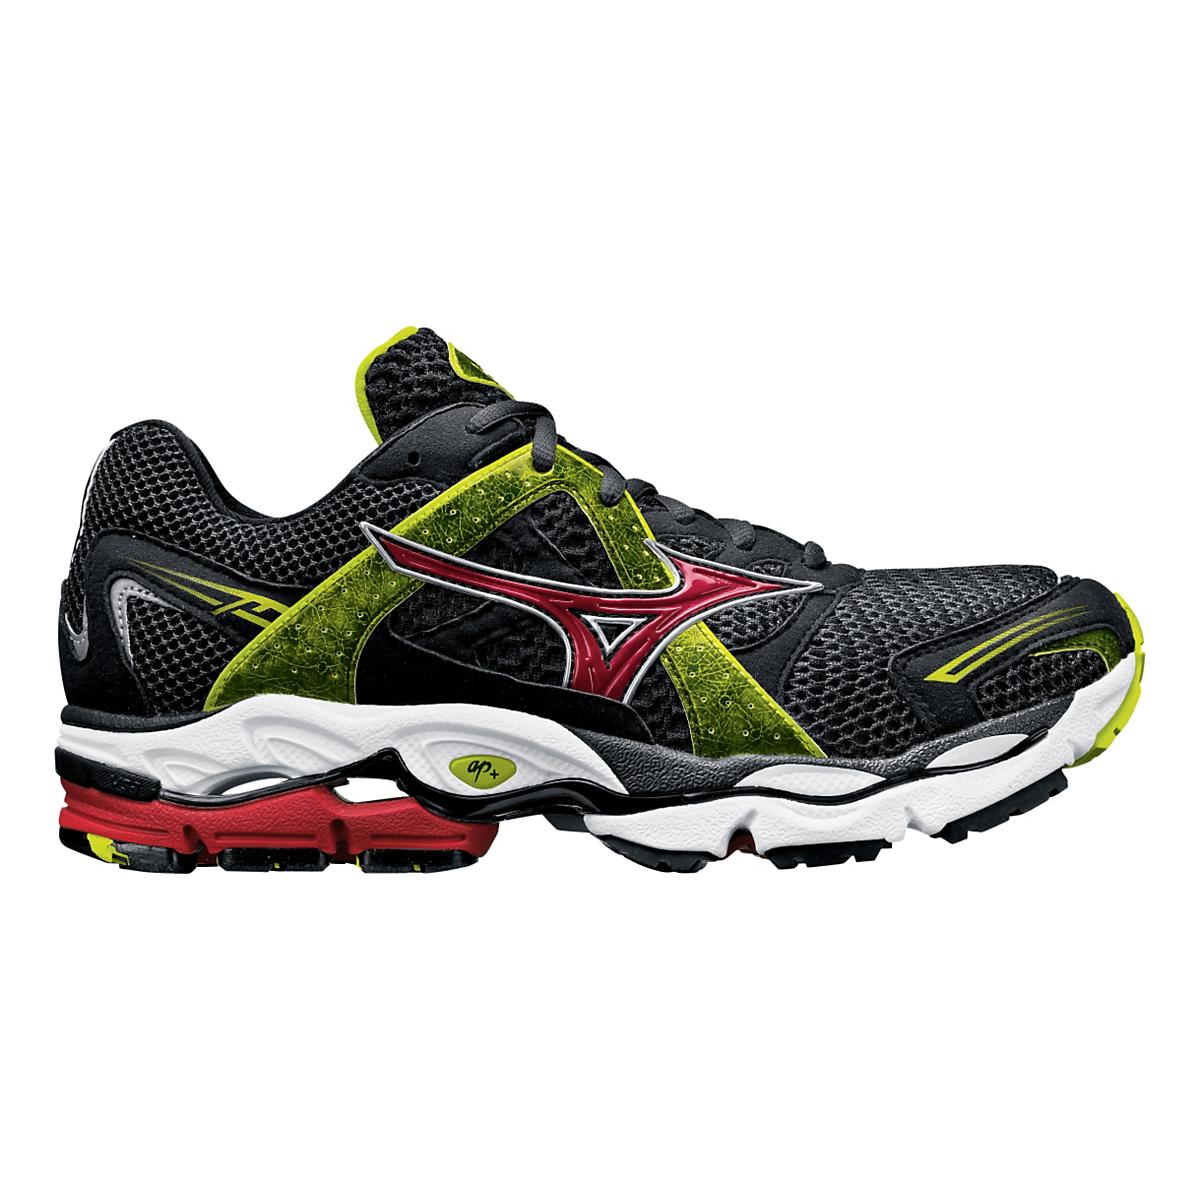 R Running Racing Shoes